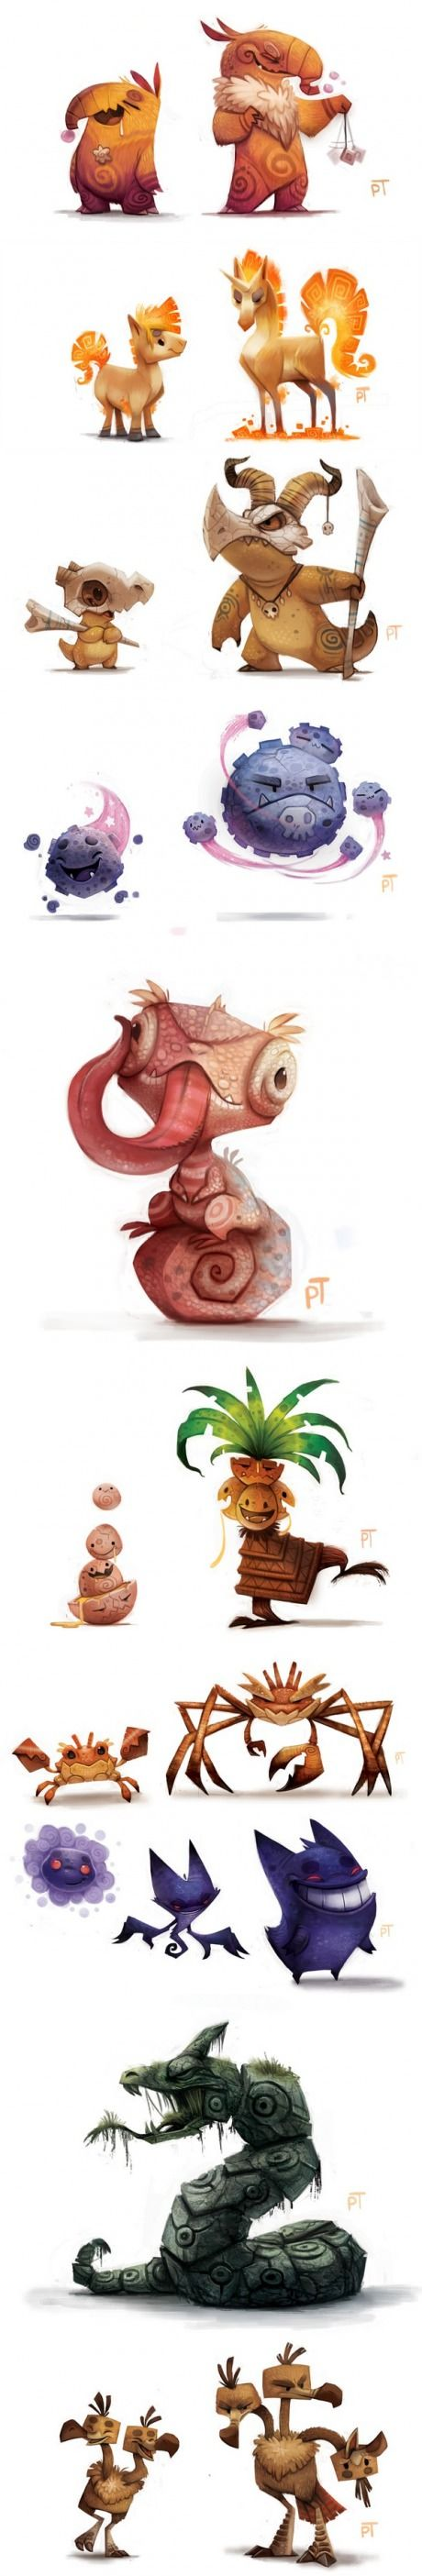 Pokémon according to Piper Thibodeau. Tribal designs with clever use of line to create a rough style.